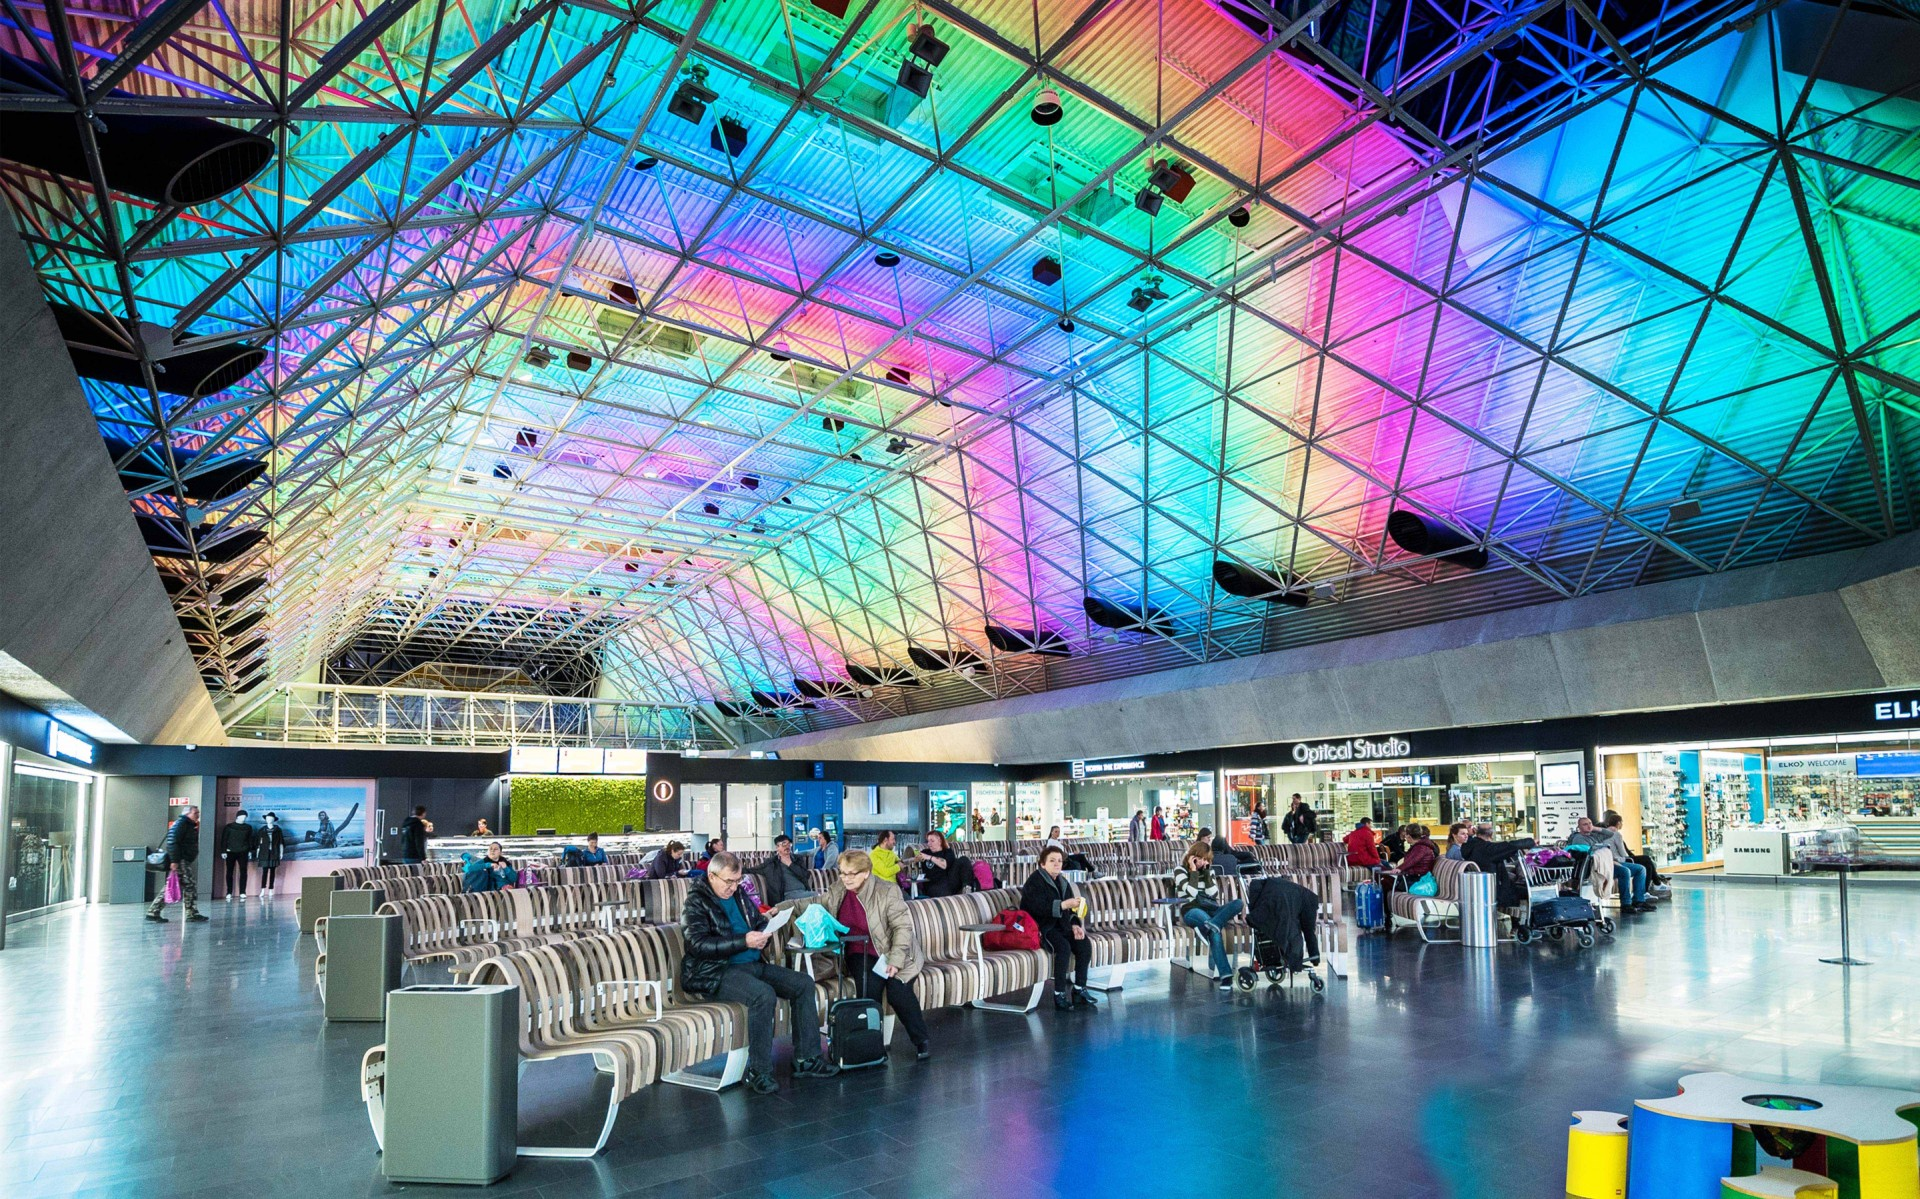 The new lighting comes as part of a major overhaul of the airport.